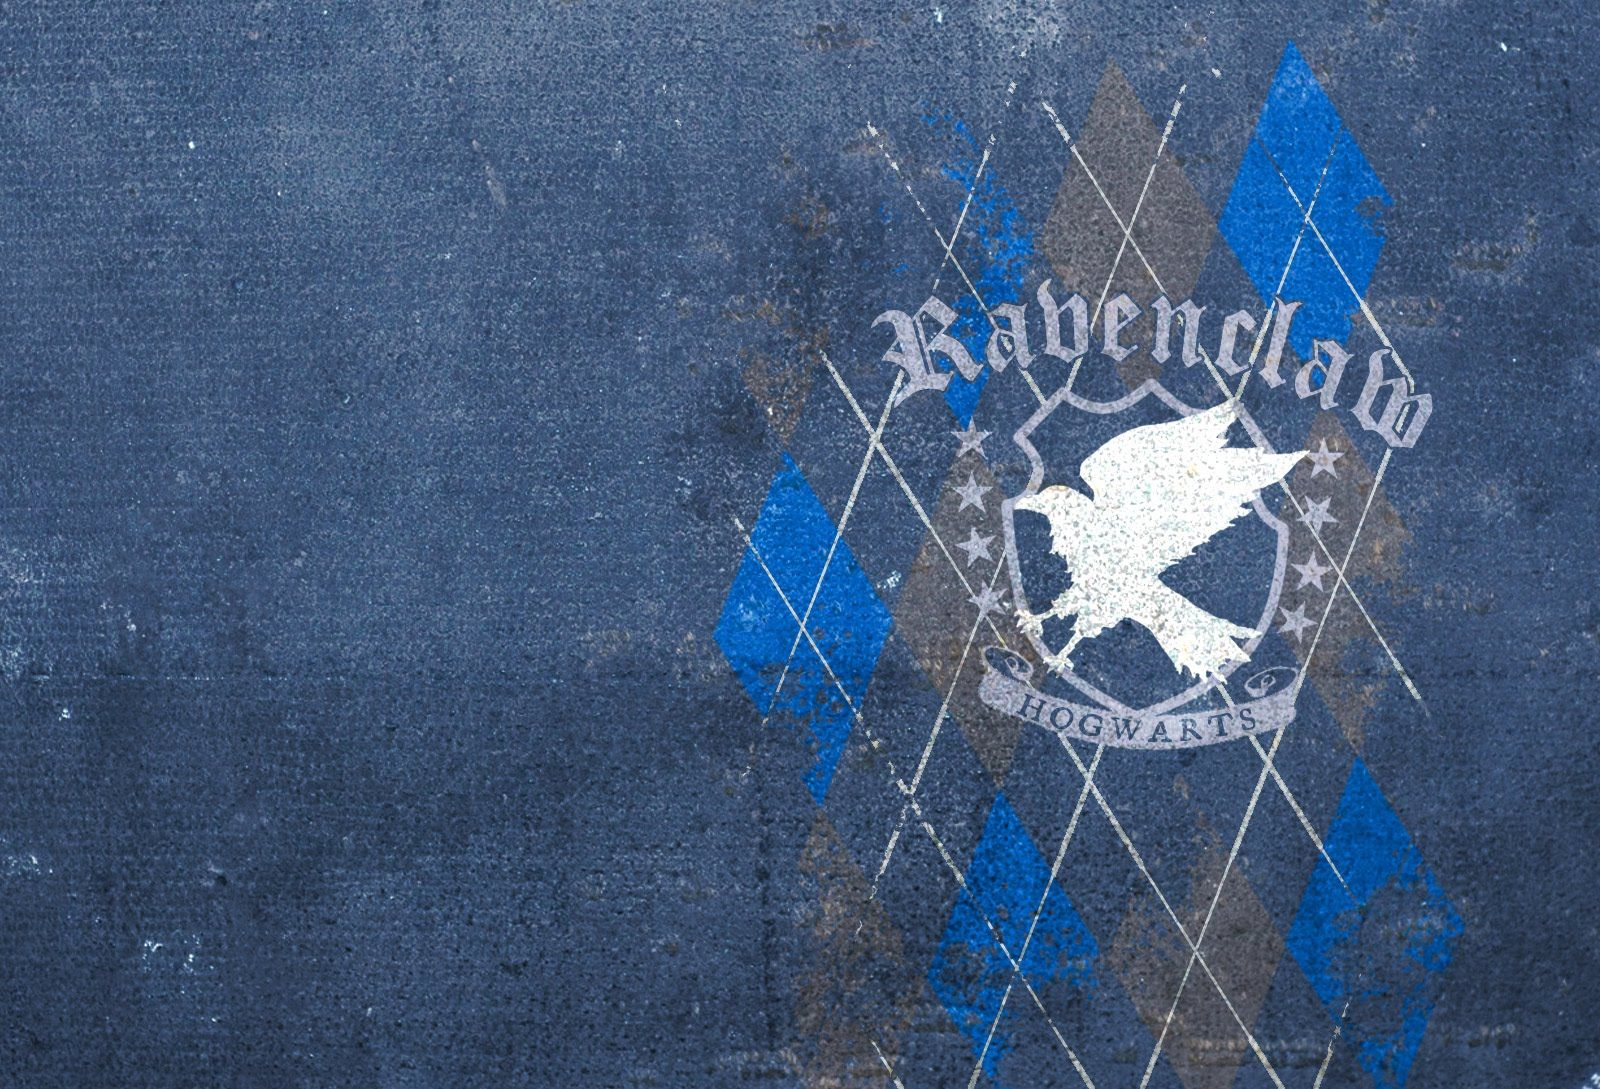 hogwarts ravenclaw wallpaper for mac -#main